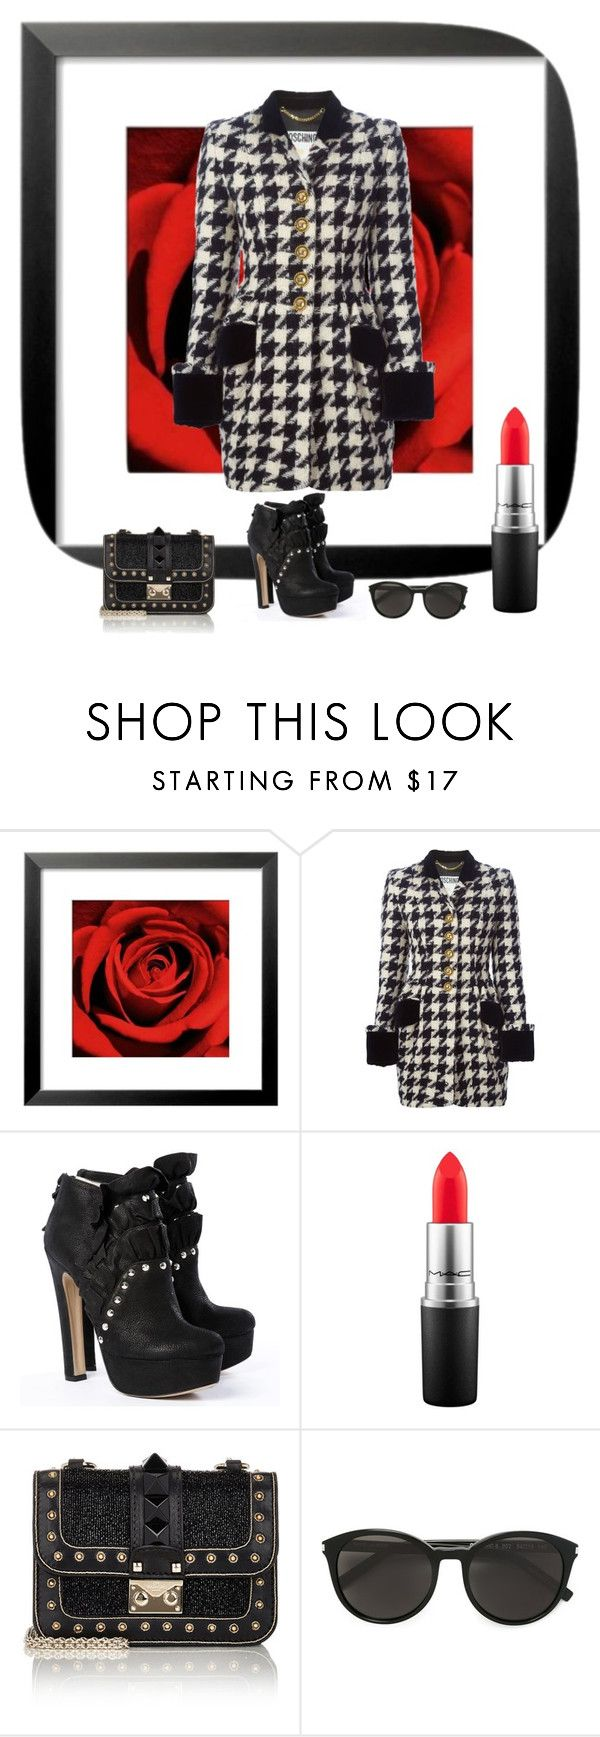 """214. Soon spring"" by kristina-lindstrom ❤ liked on Polyvore featuring Moschino, De Siena, MAC Cosmetics, Valentino, Yves Saint Laurent, women's clothing, women, female, woman and misses"